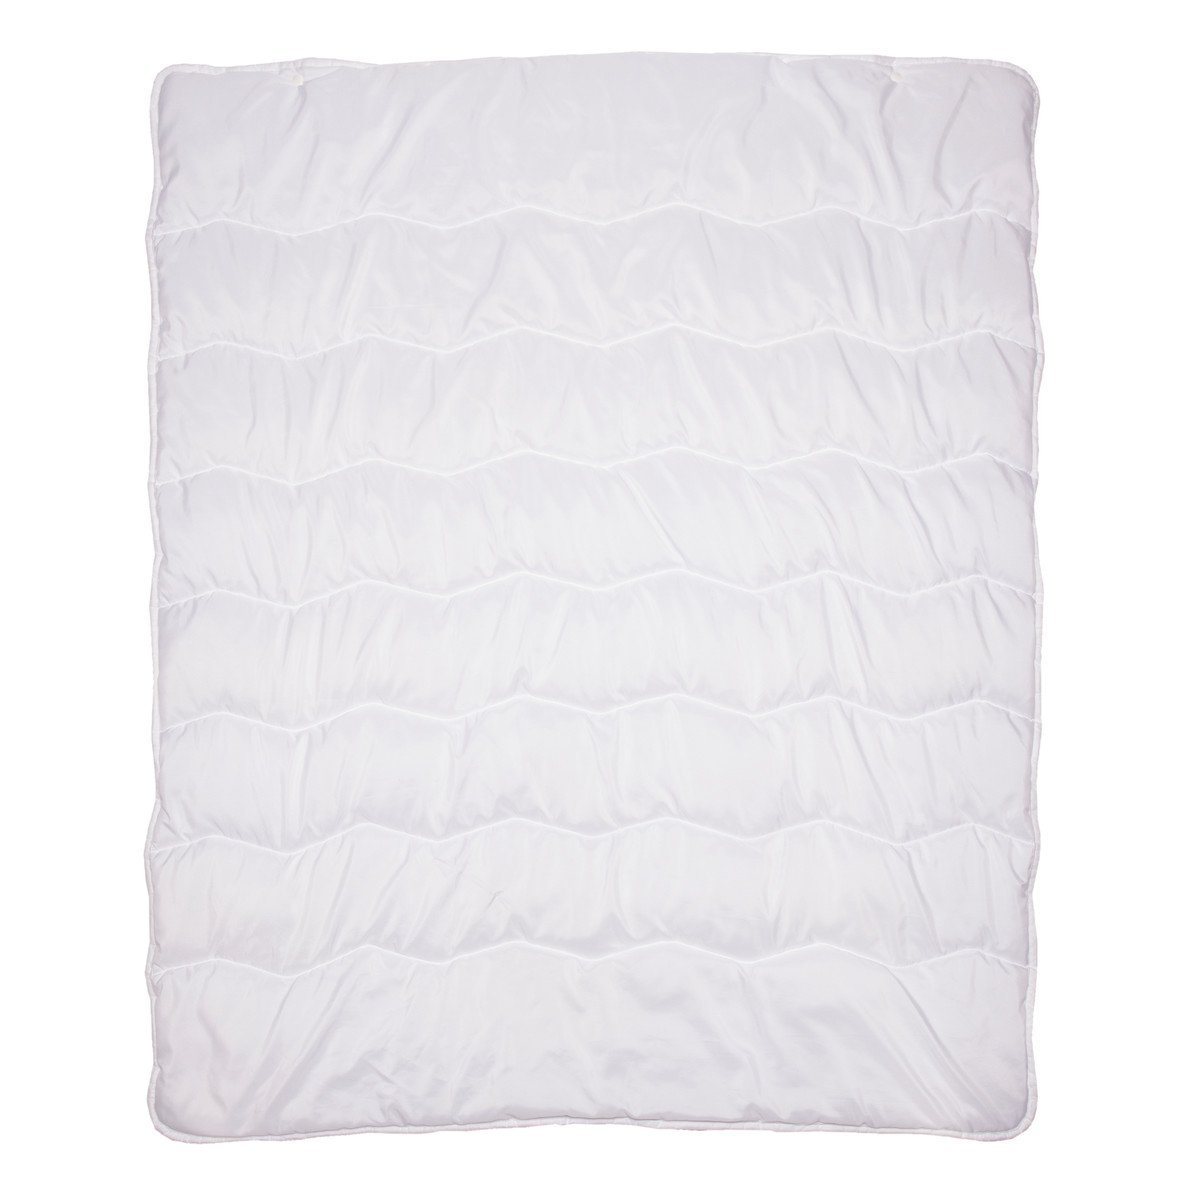 Grobag Gro-to-Bed 4 Tog Grobag Gro-to-Bed Duvet pour lit simple 135 X 200 cm Blanc Gro to Bed AHA0032